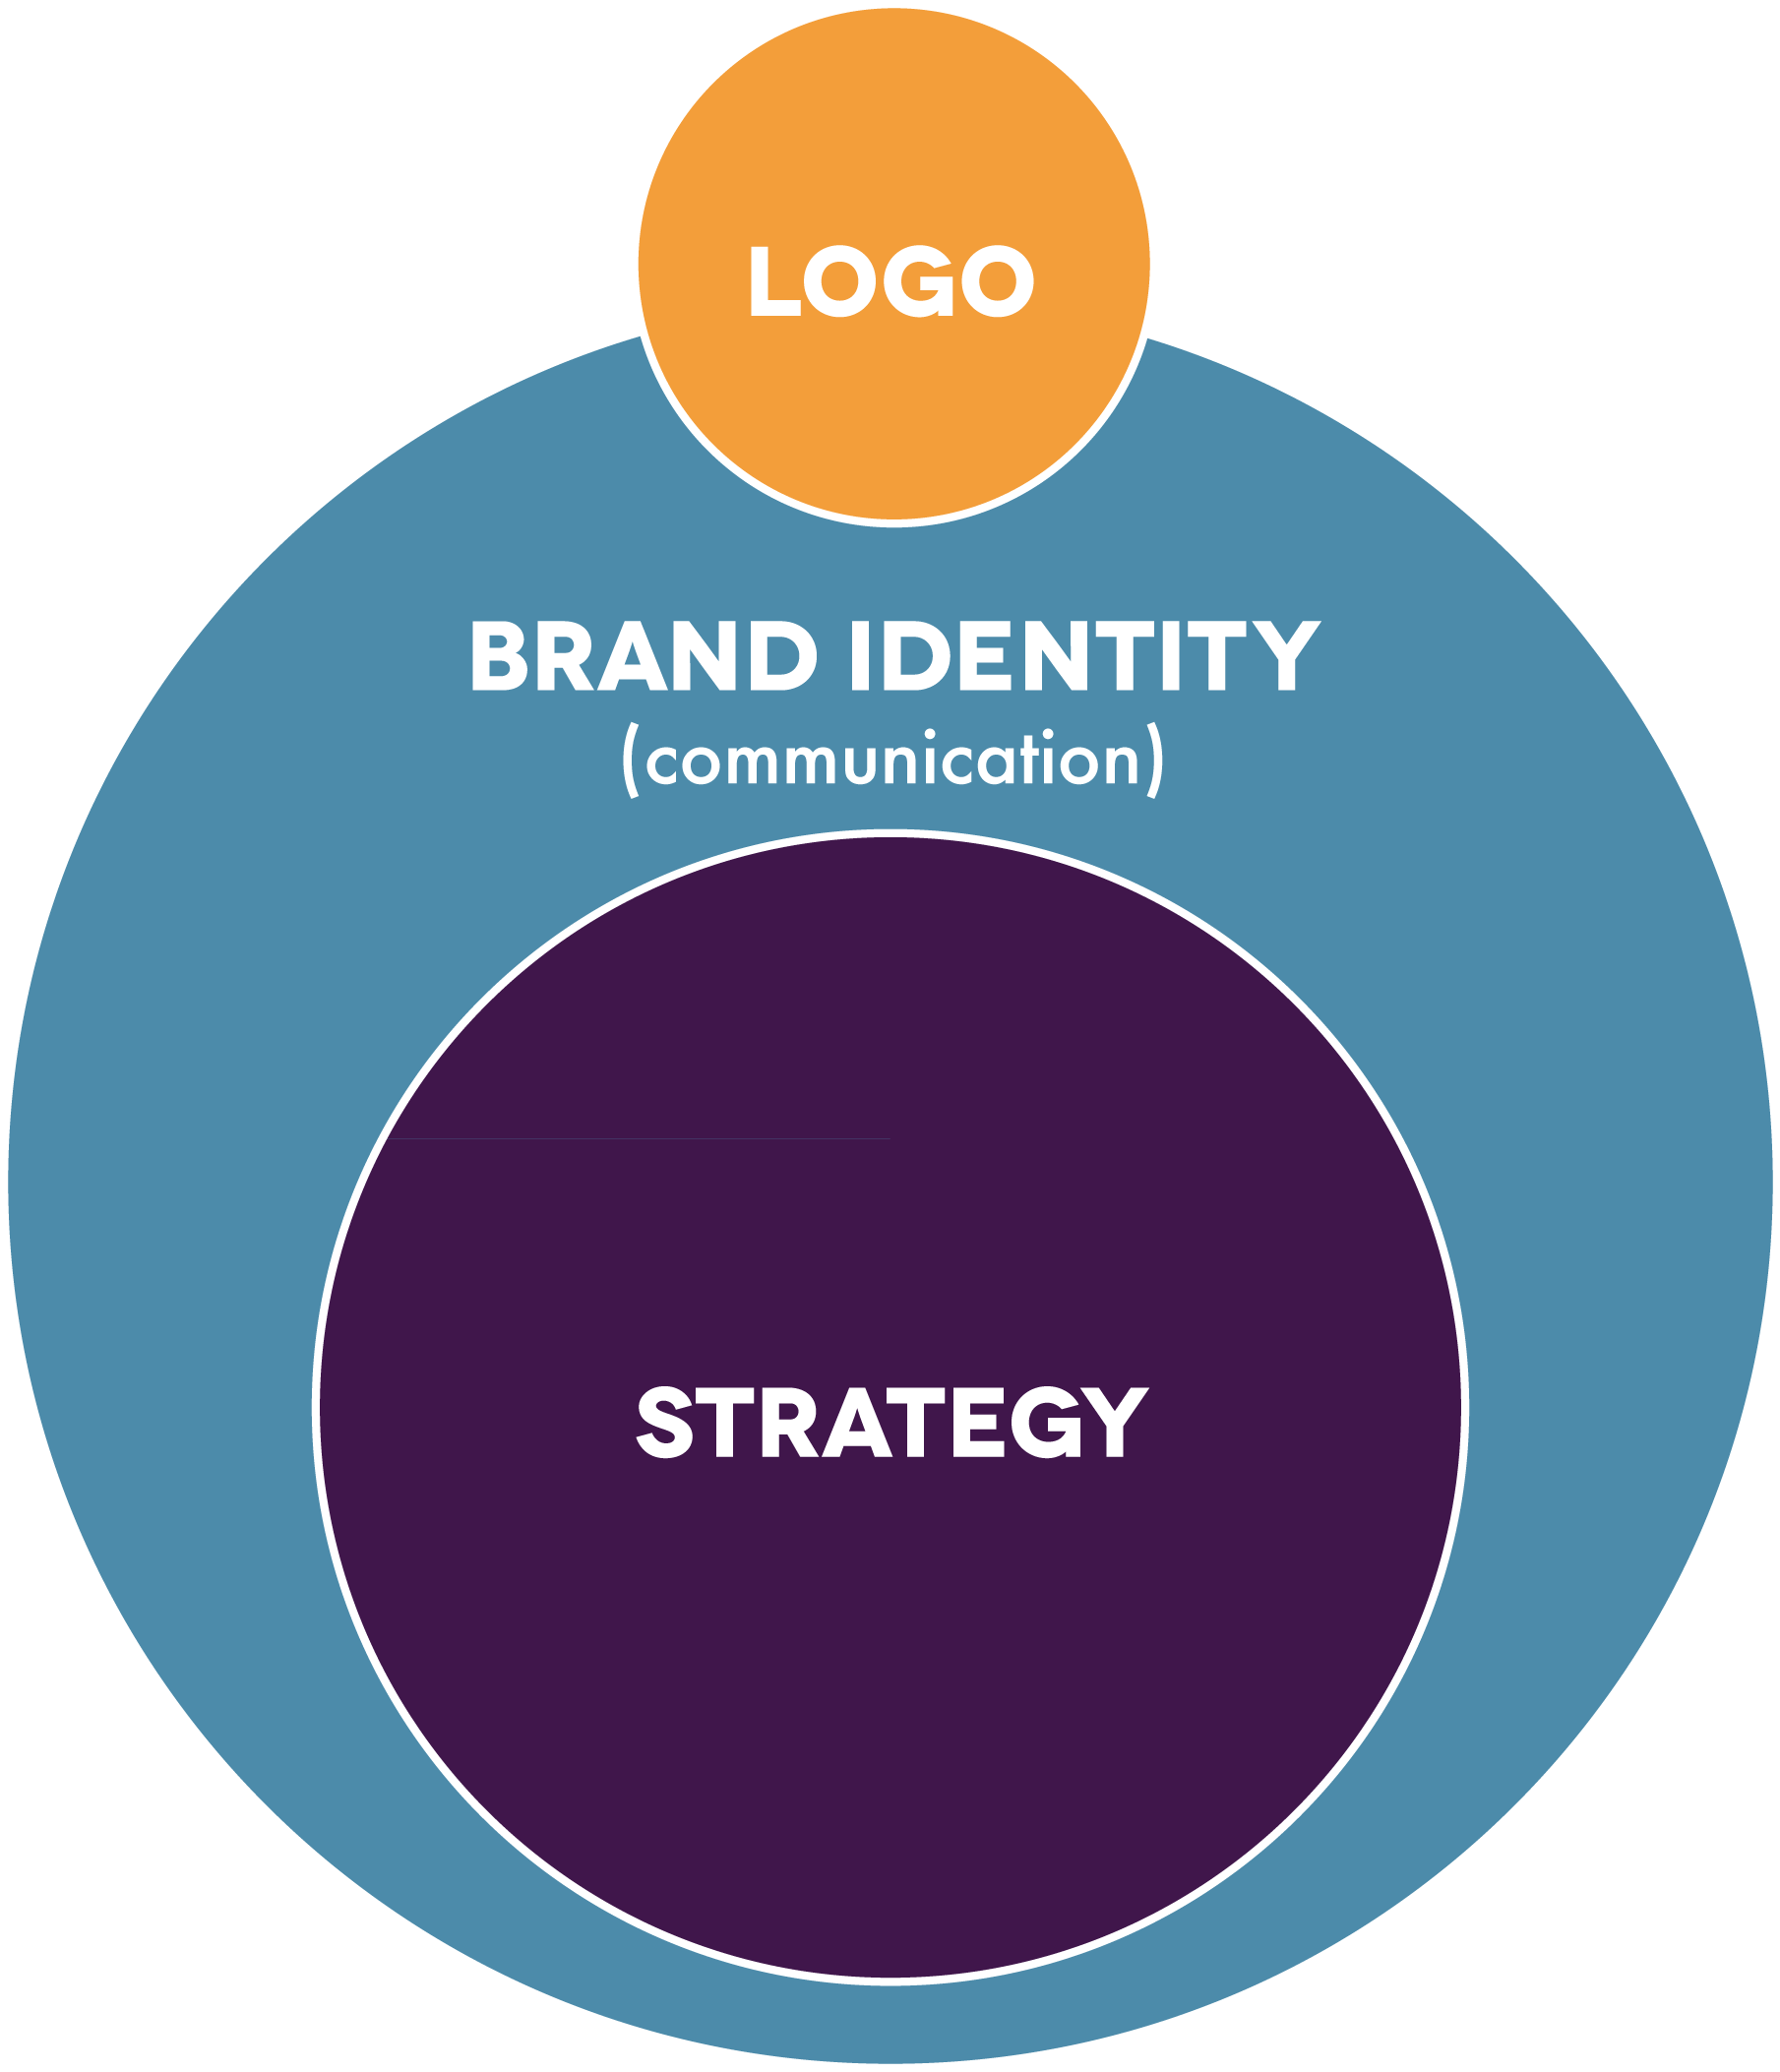 Strategy and Brand Identity